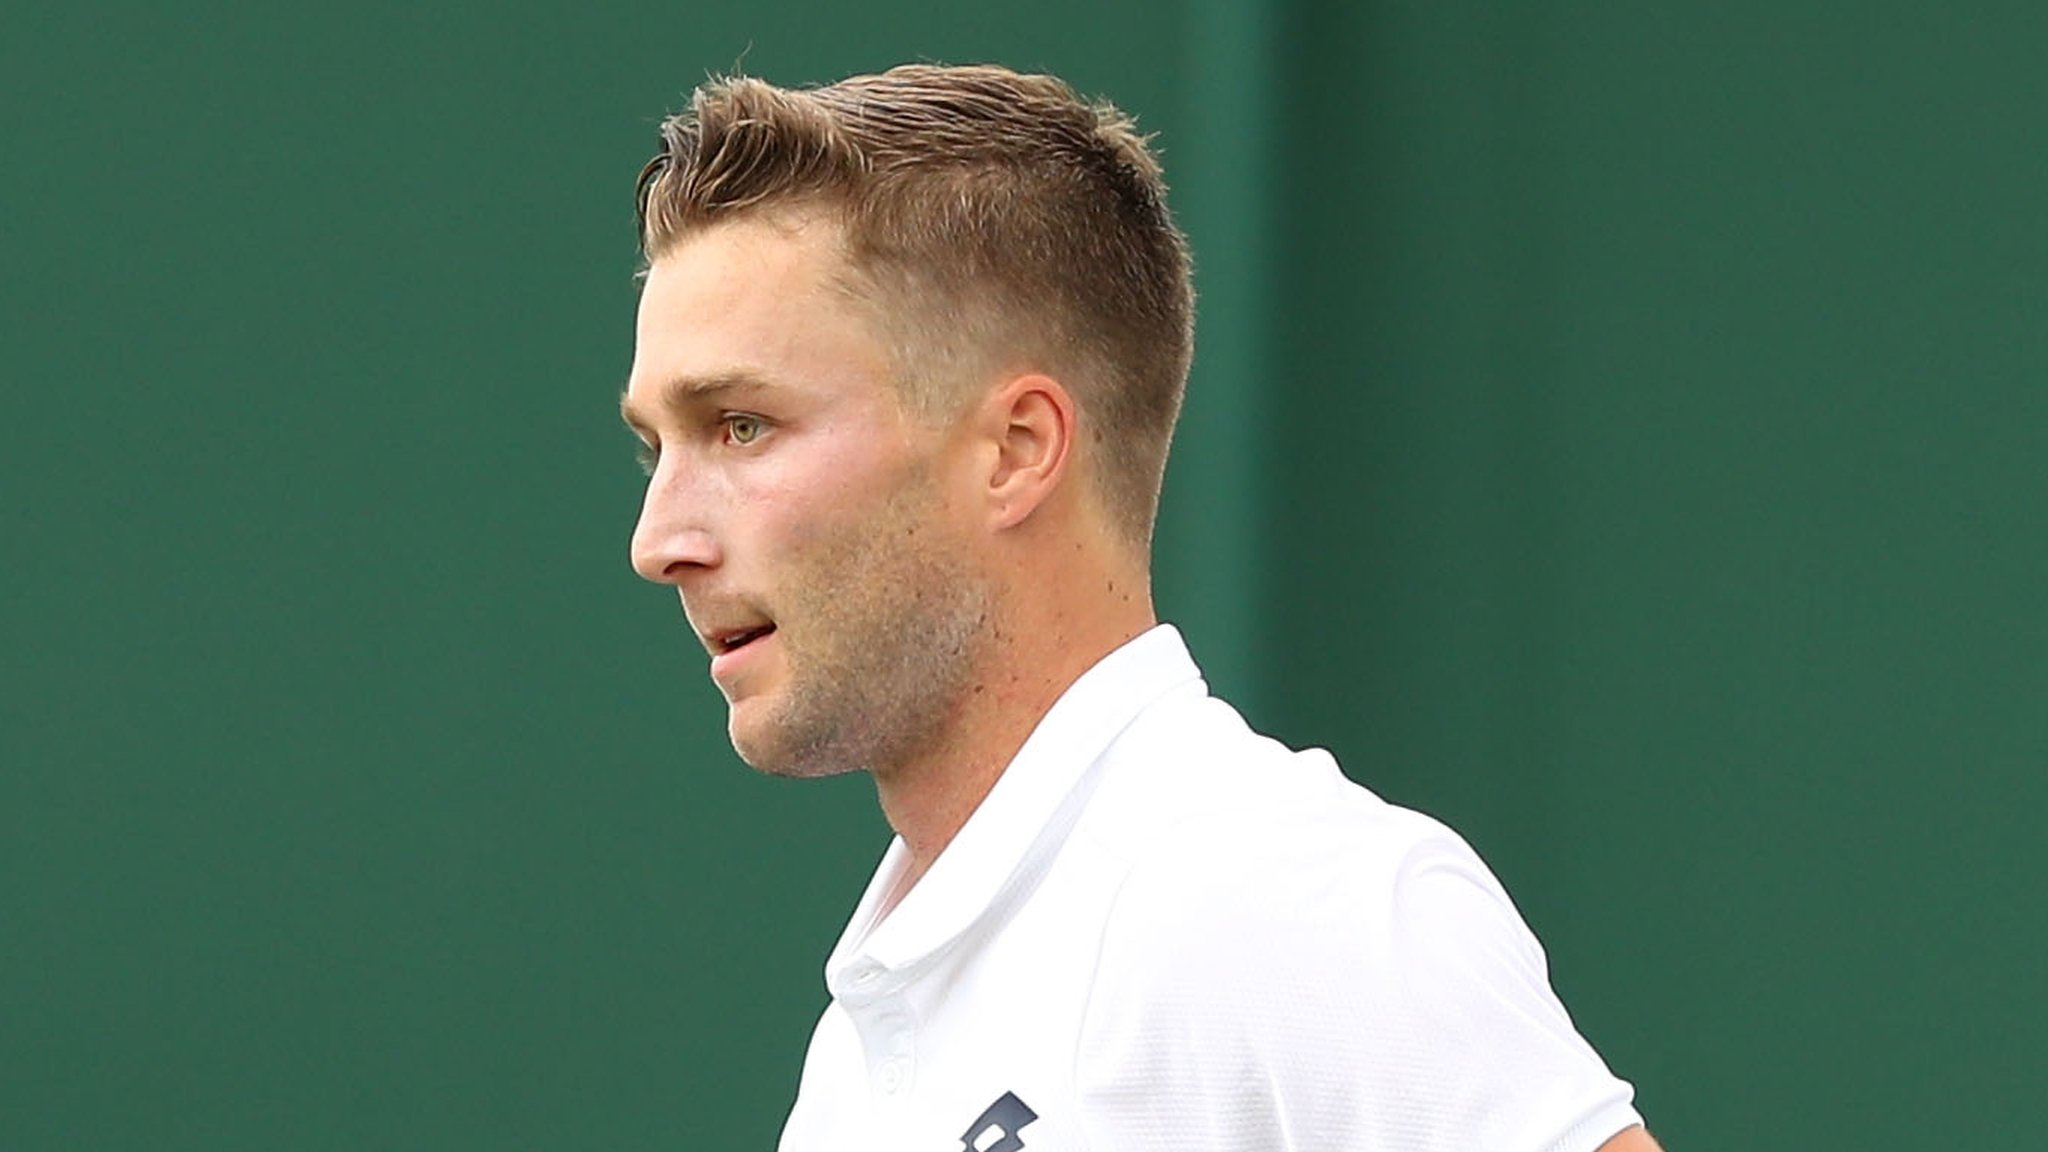 Broady reaches Wimbledon qualifying second round